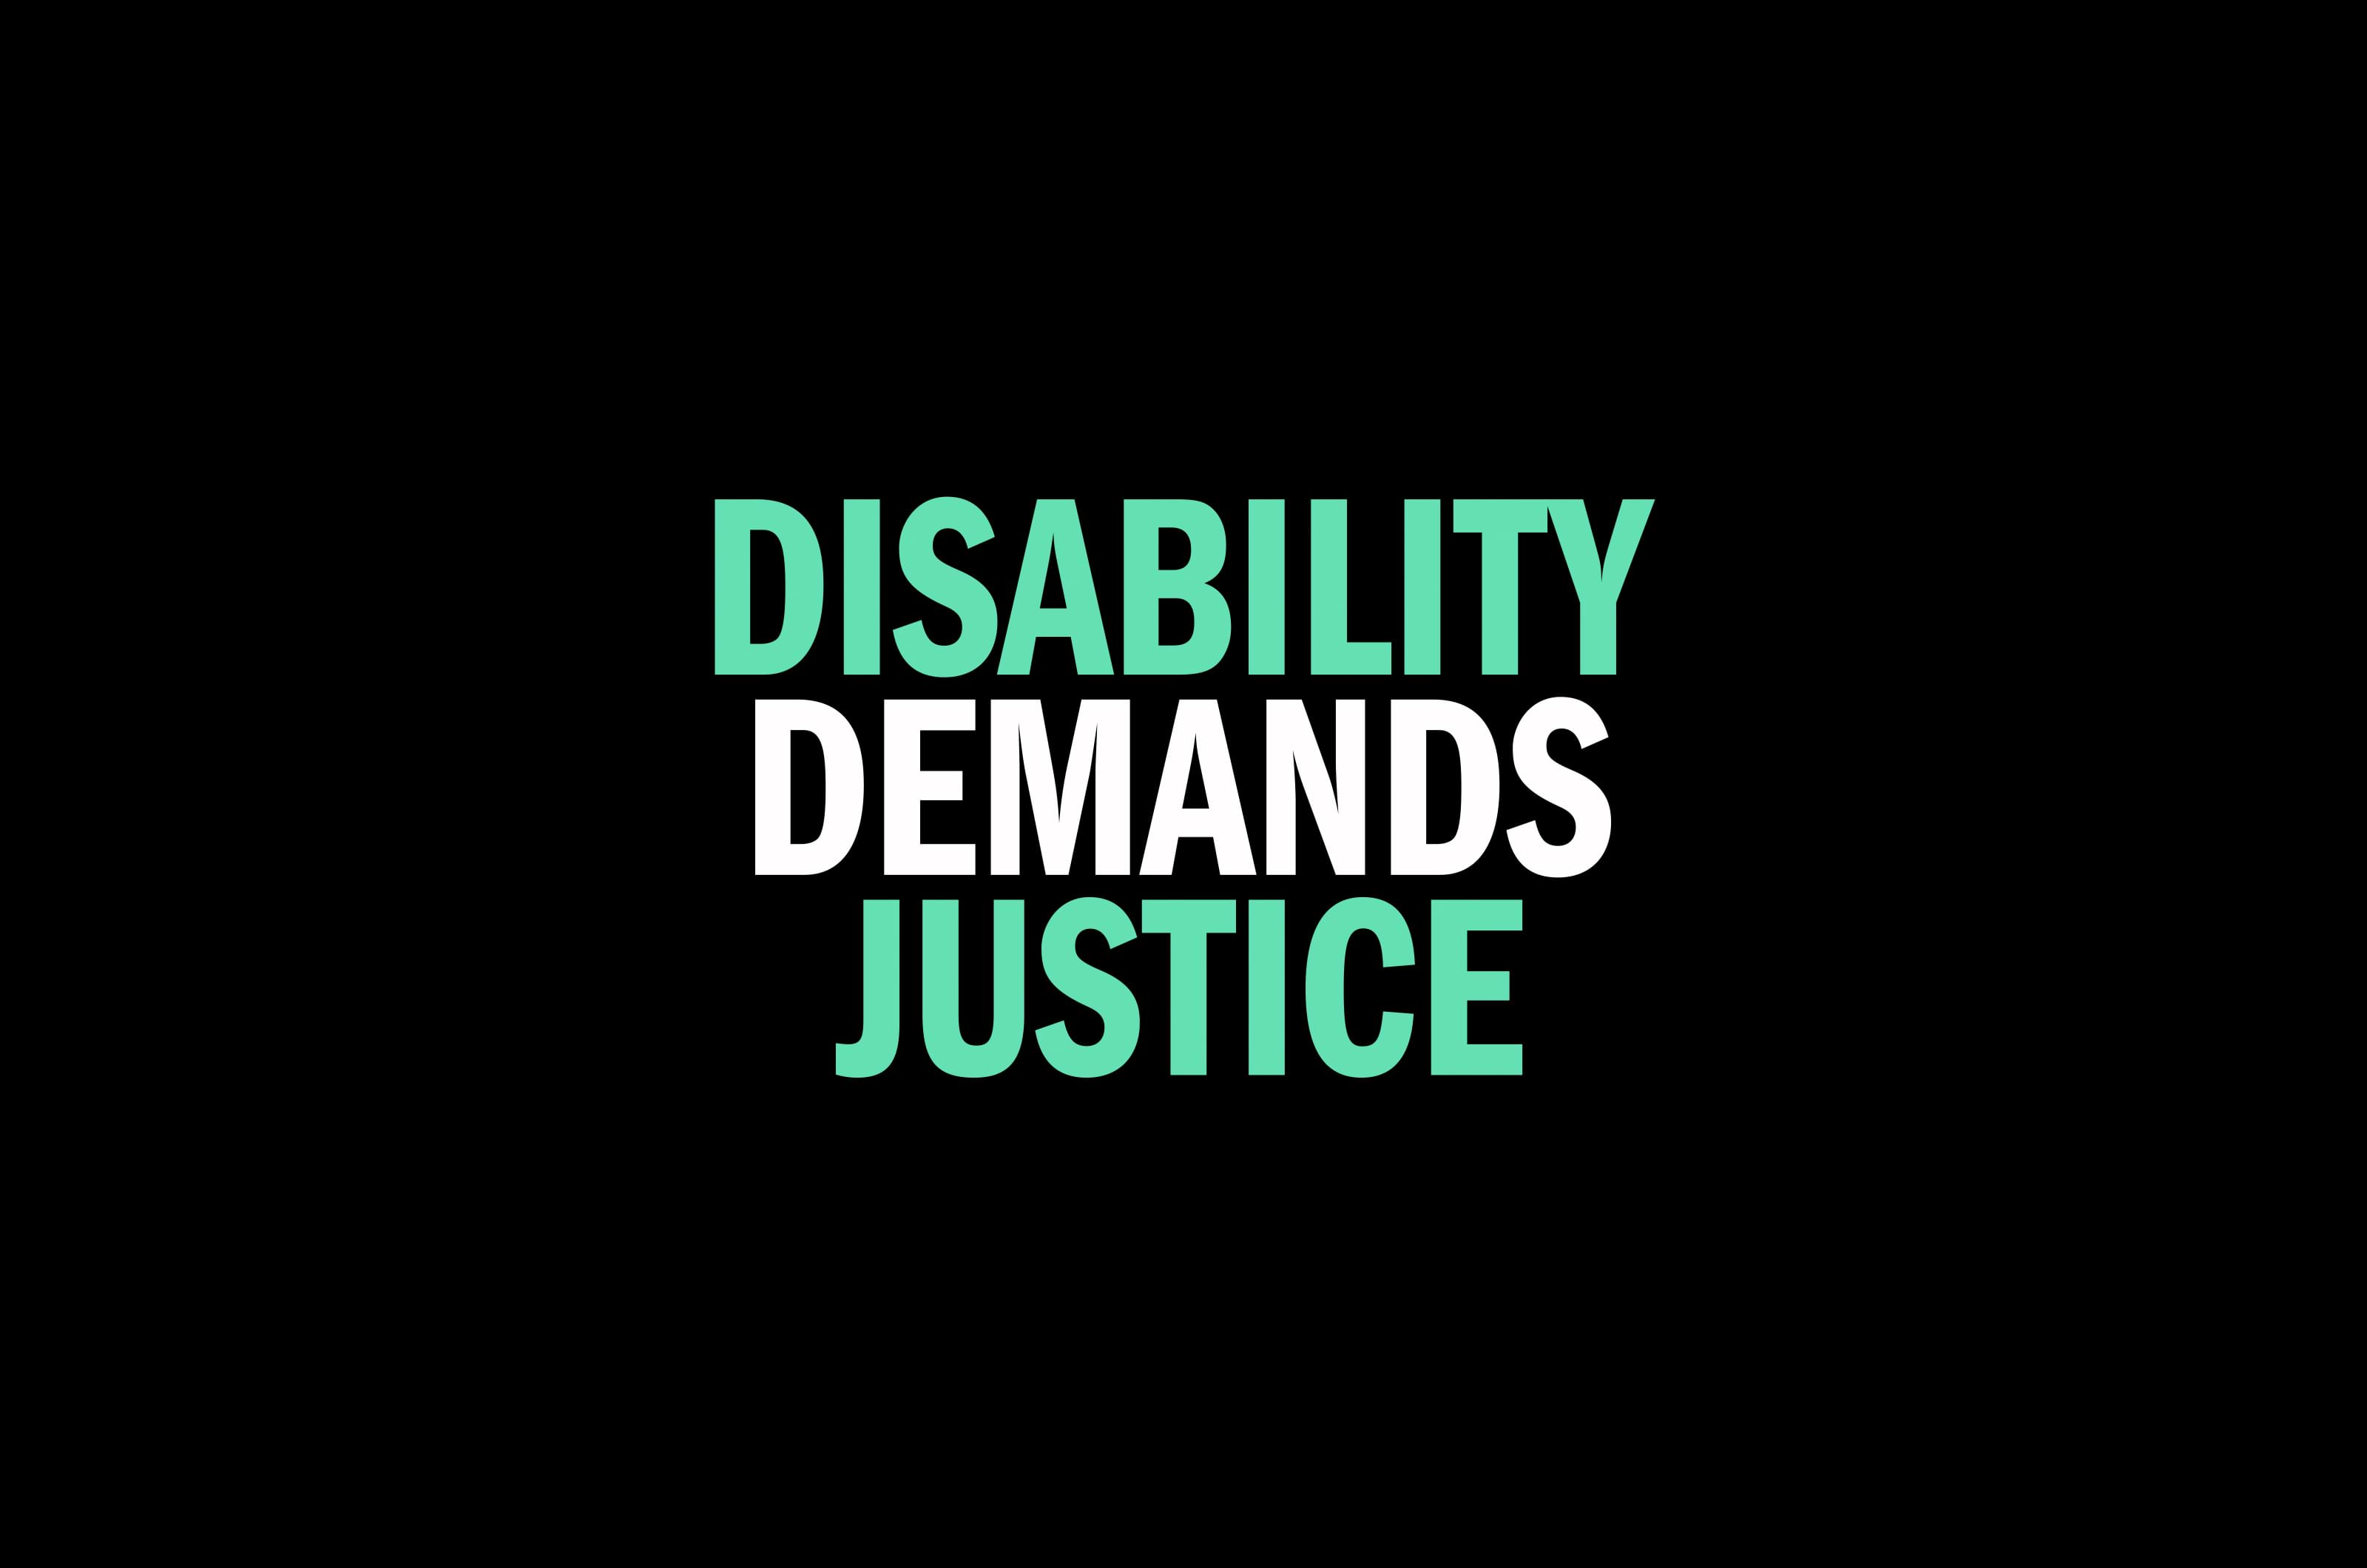 Disability Demands Justice